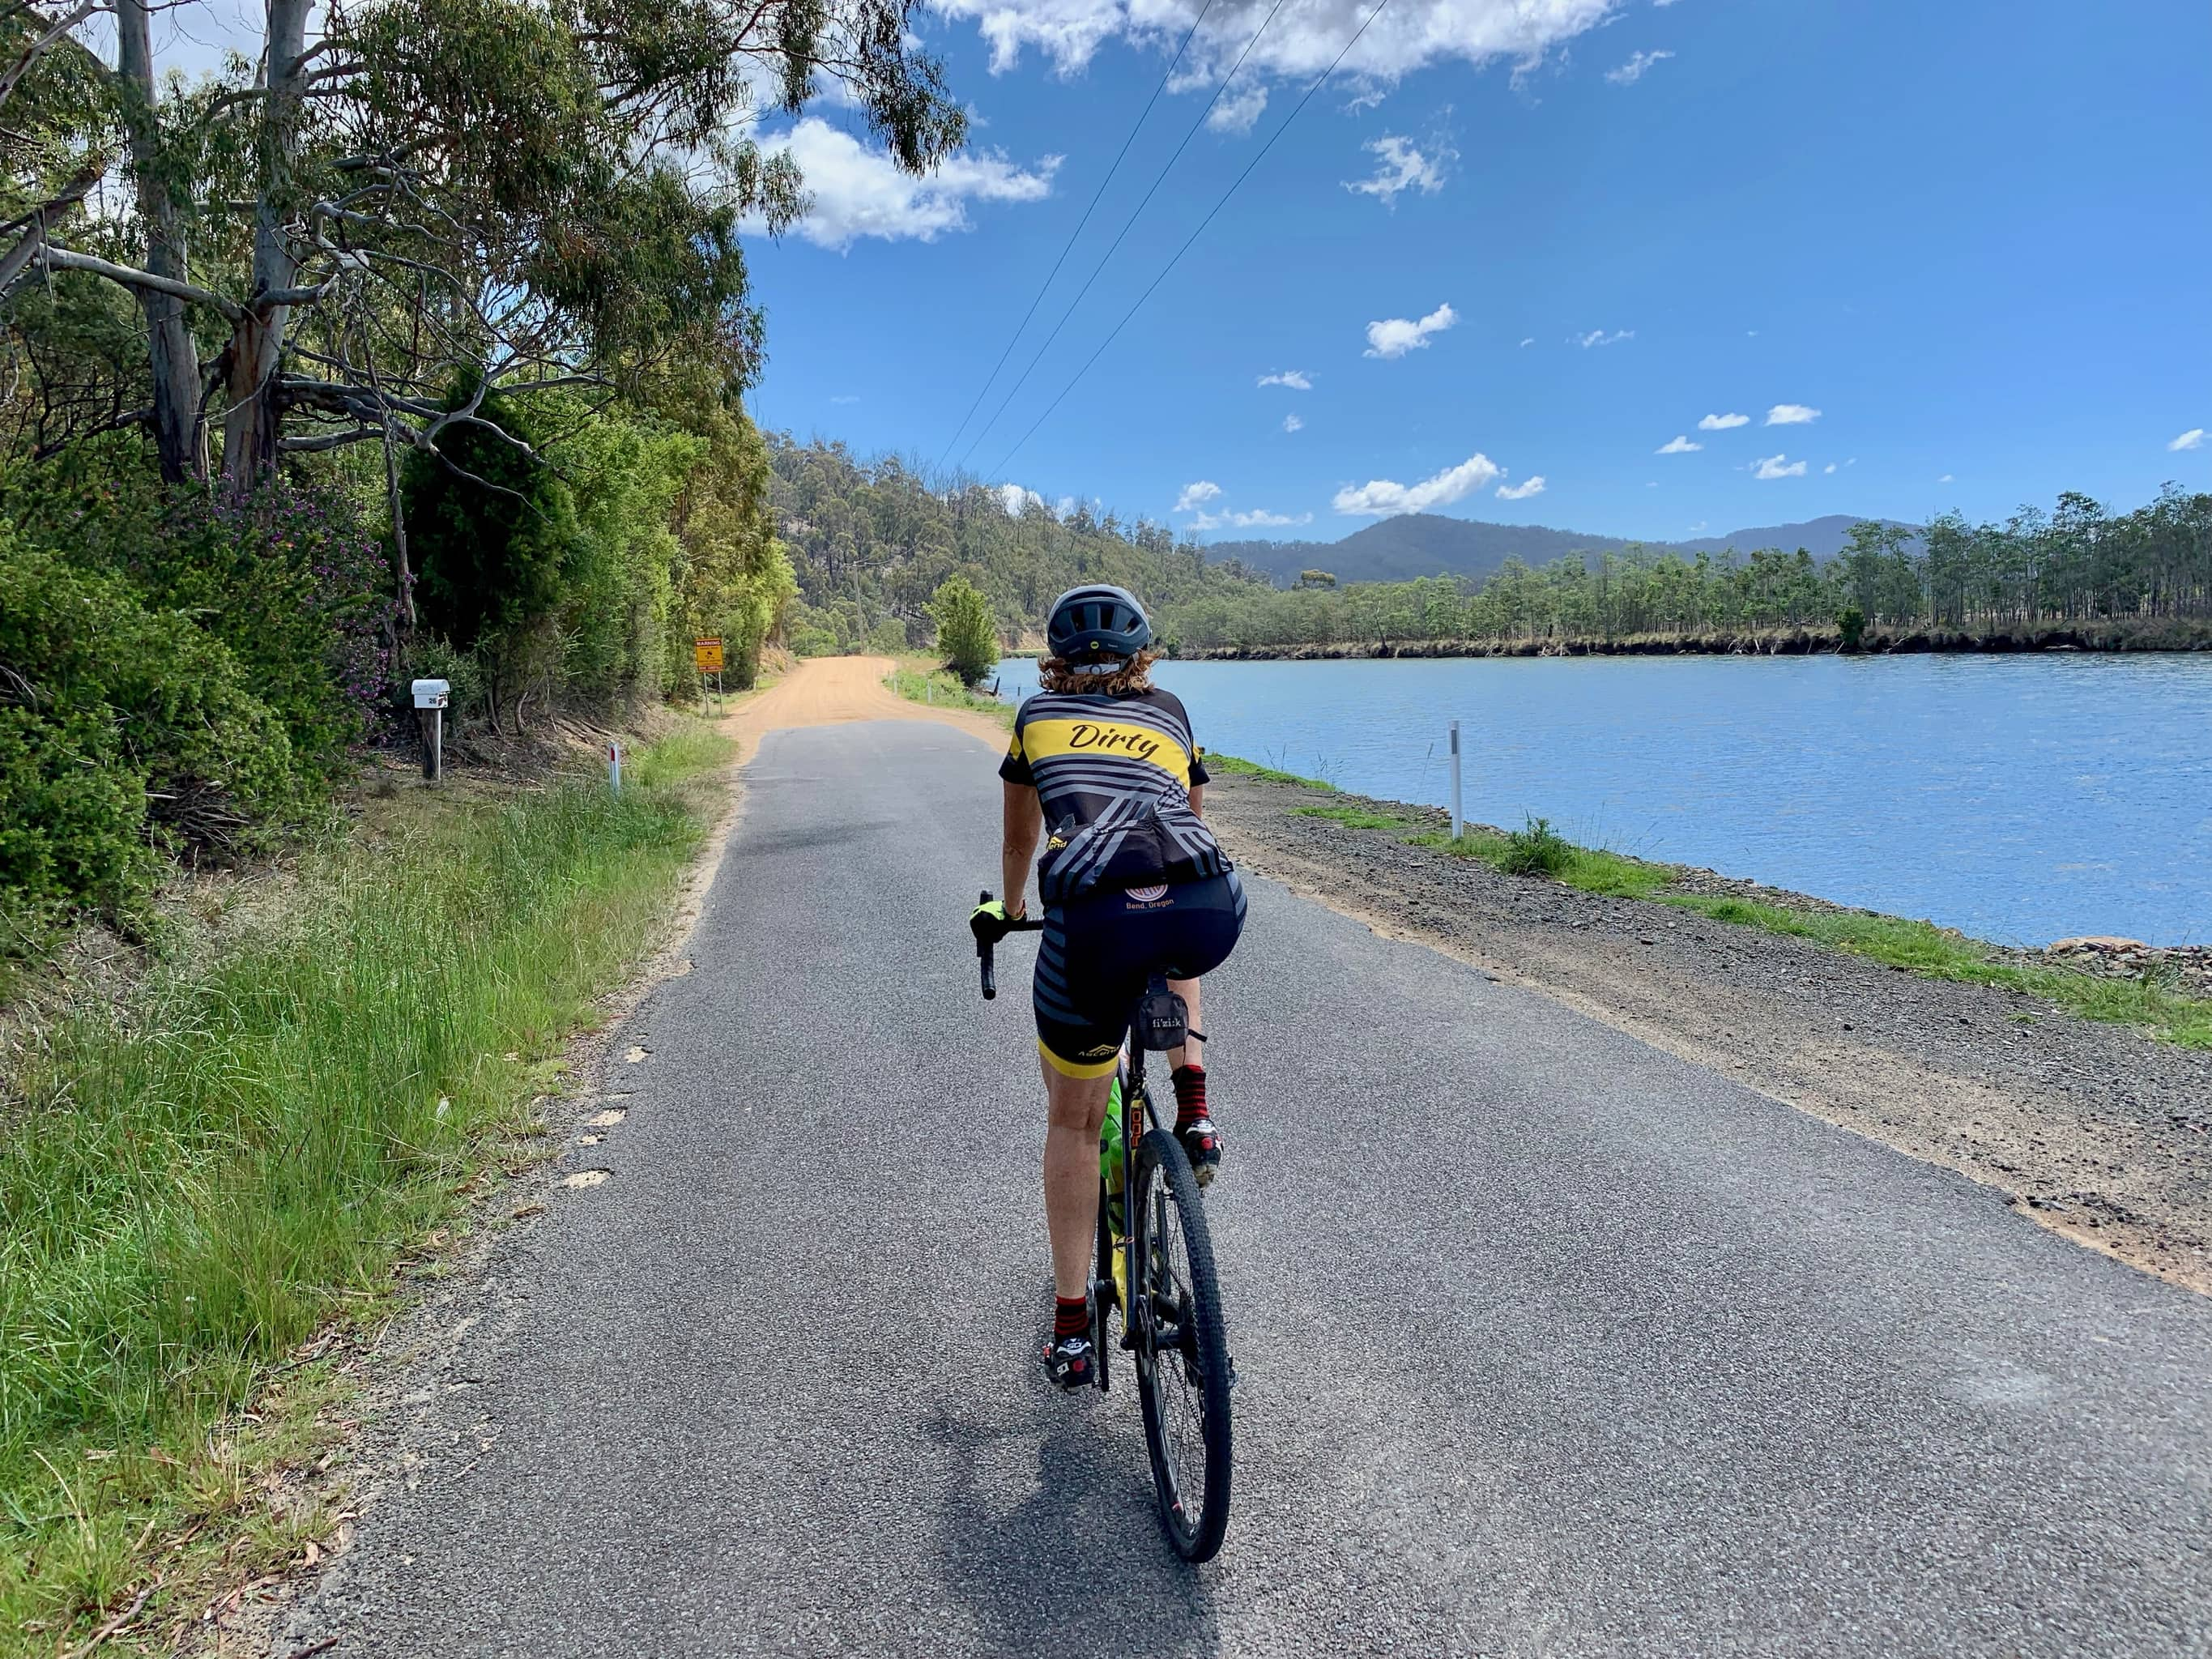 Bike rider at the transition of paved road to gravel road with Scamander river to the right.